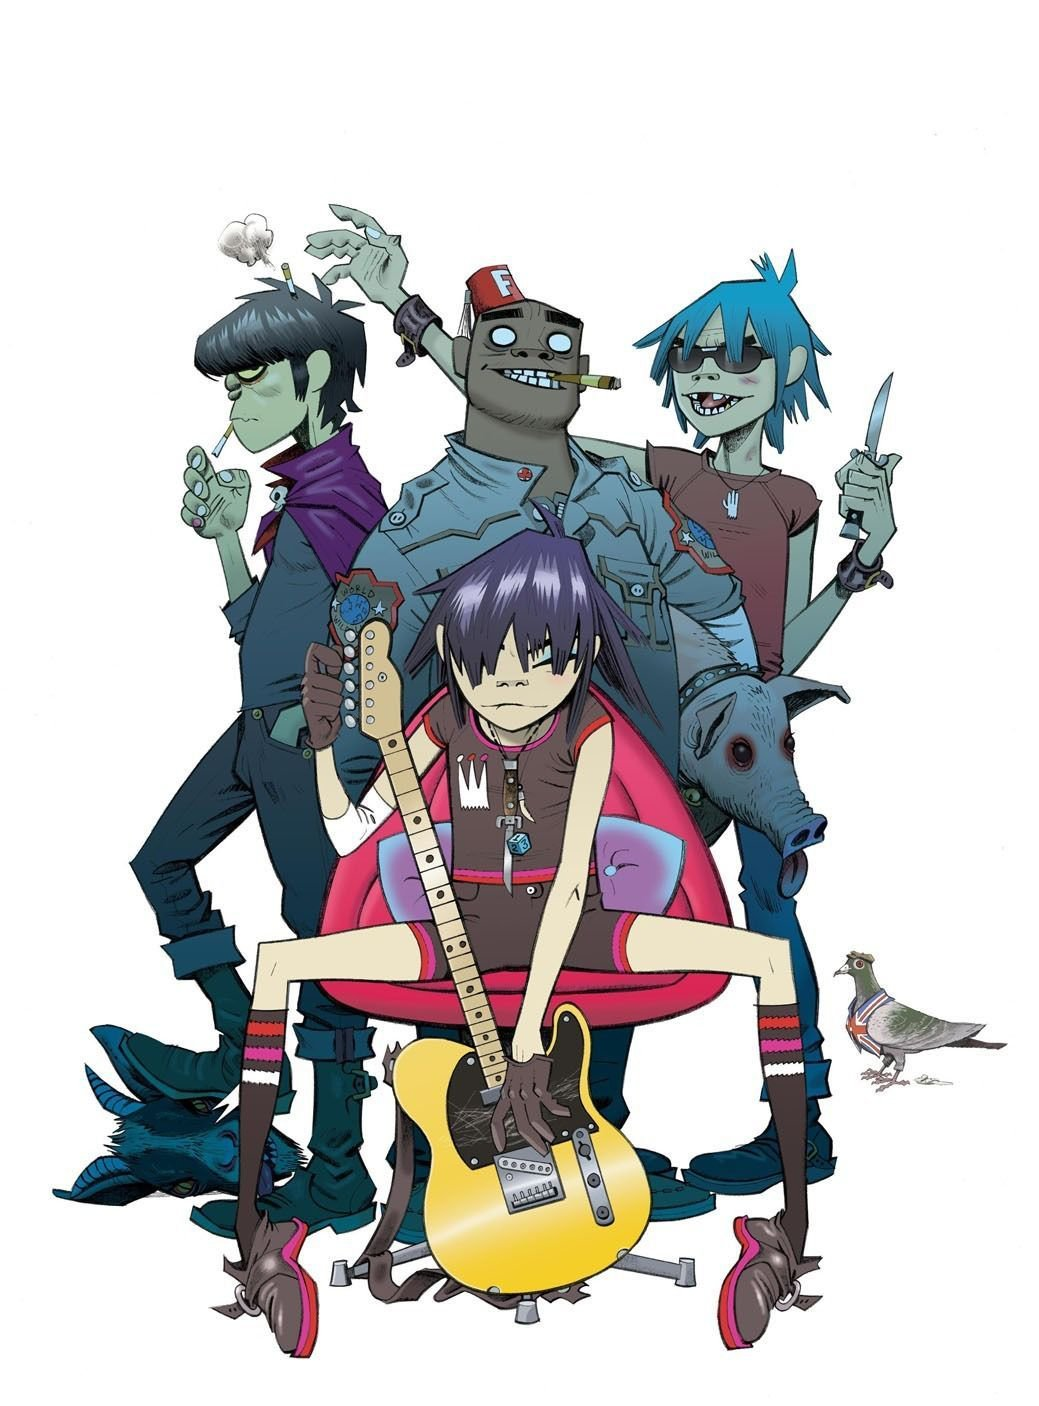 Gorillaz Music Band Group Art 32x24 Poster Decor